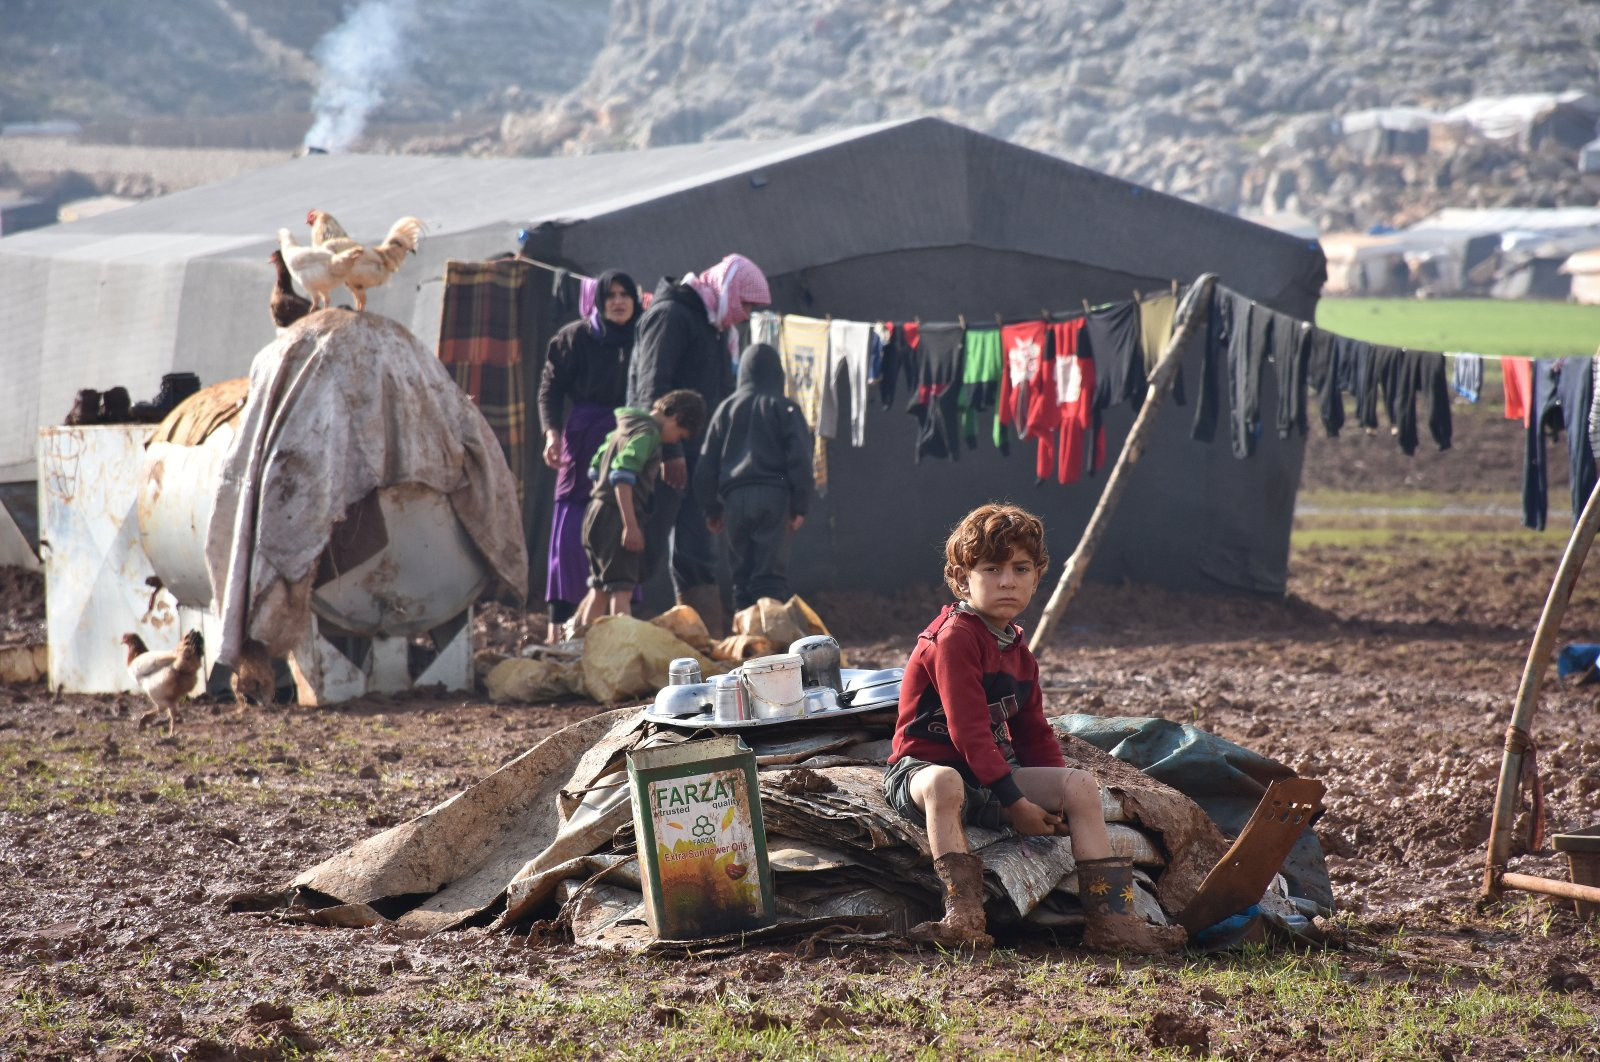 Civilians who fled the Assad regime in Idlib try to survive amid mud and cold living in tents in areas near the Turkish border, Jan. 5, 2020. (AA Photo)